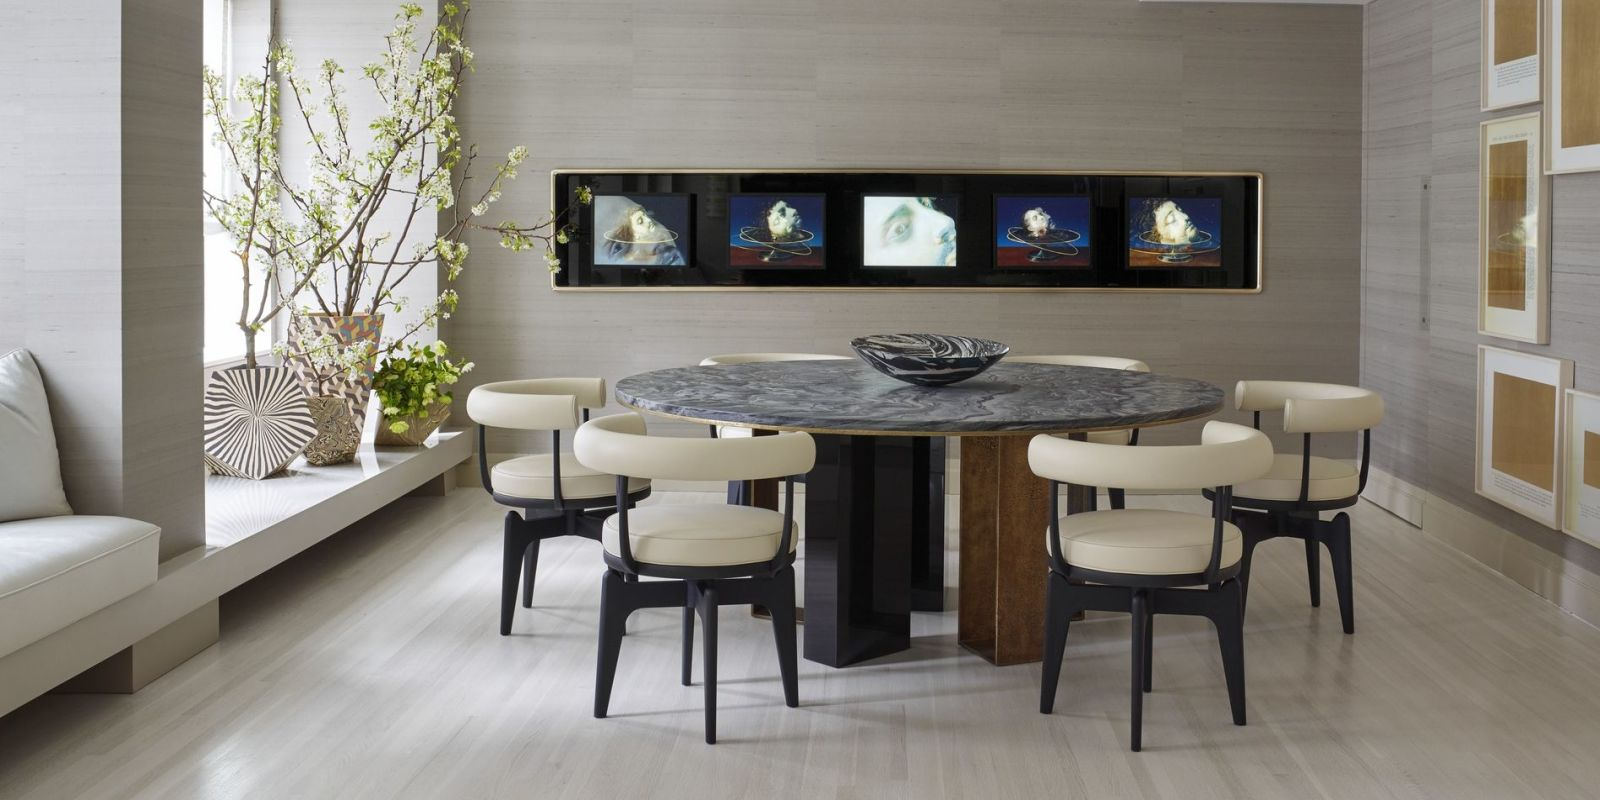 25 modern dining room decorating ideas contemporary for Dining room design contemporary